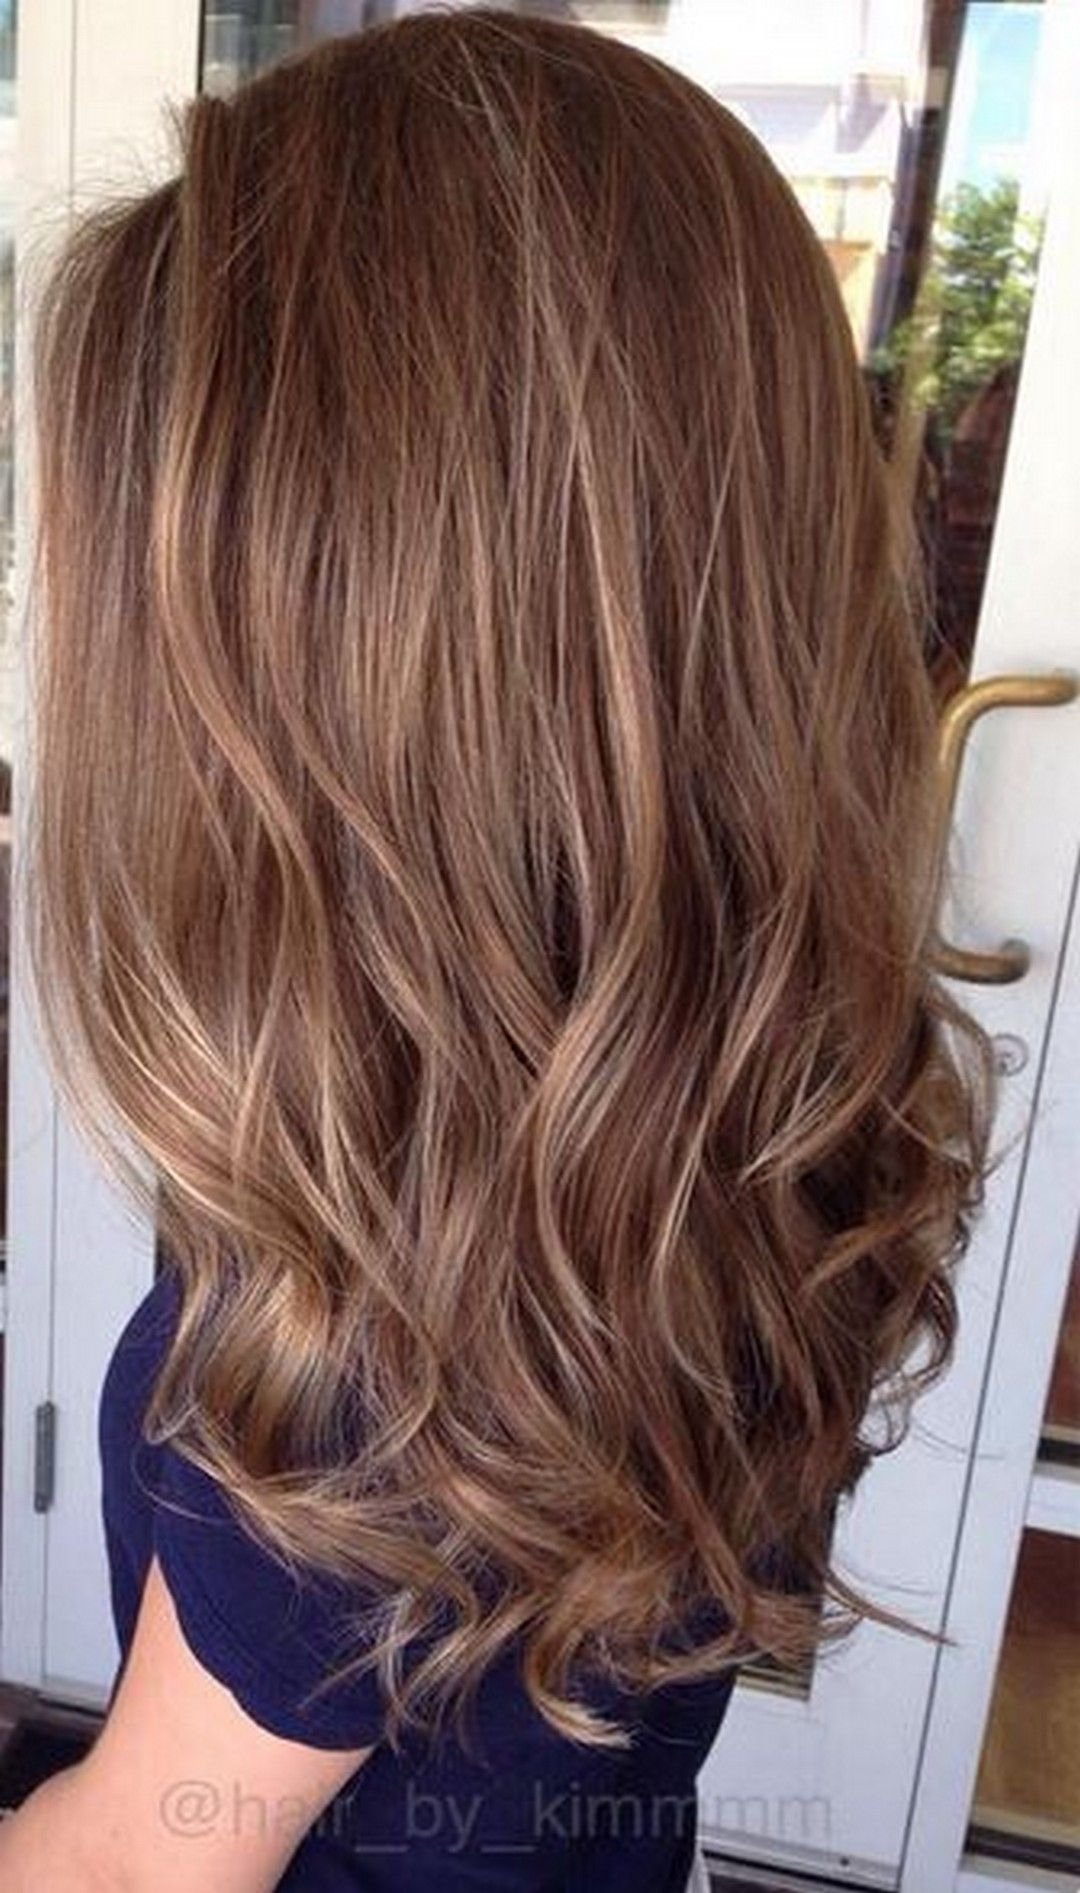 10 Amazing Red Blonde Brown Hair Color Ideas awesome burnette hair color style trends in 2017 hairstyle 2020